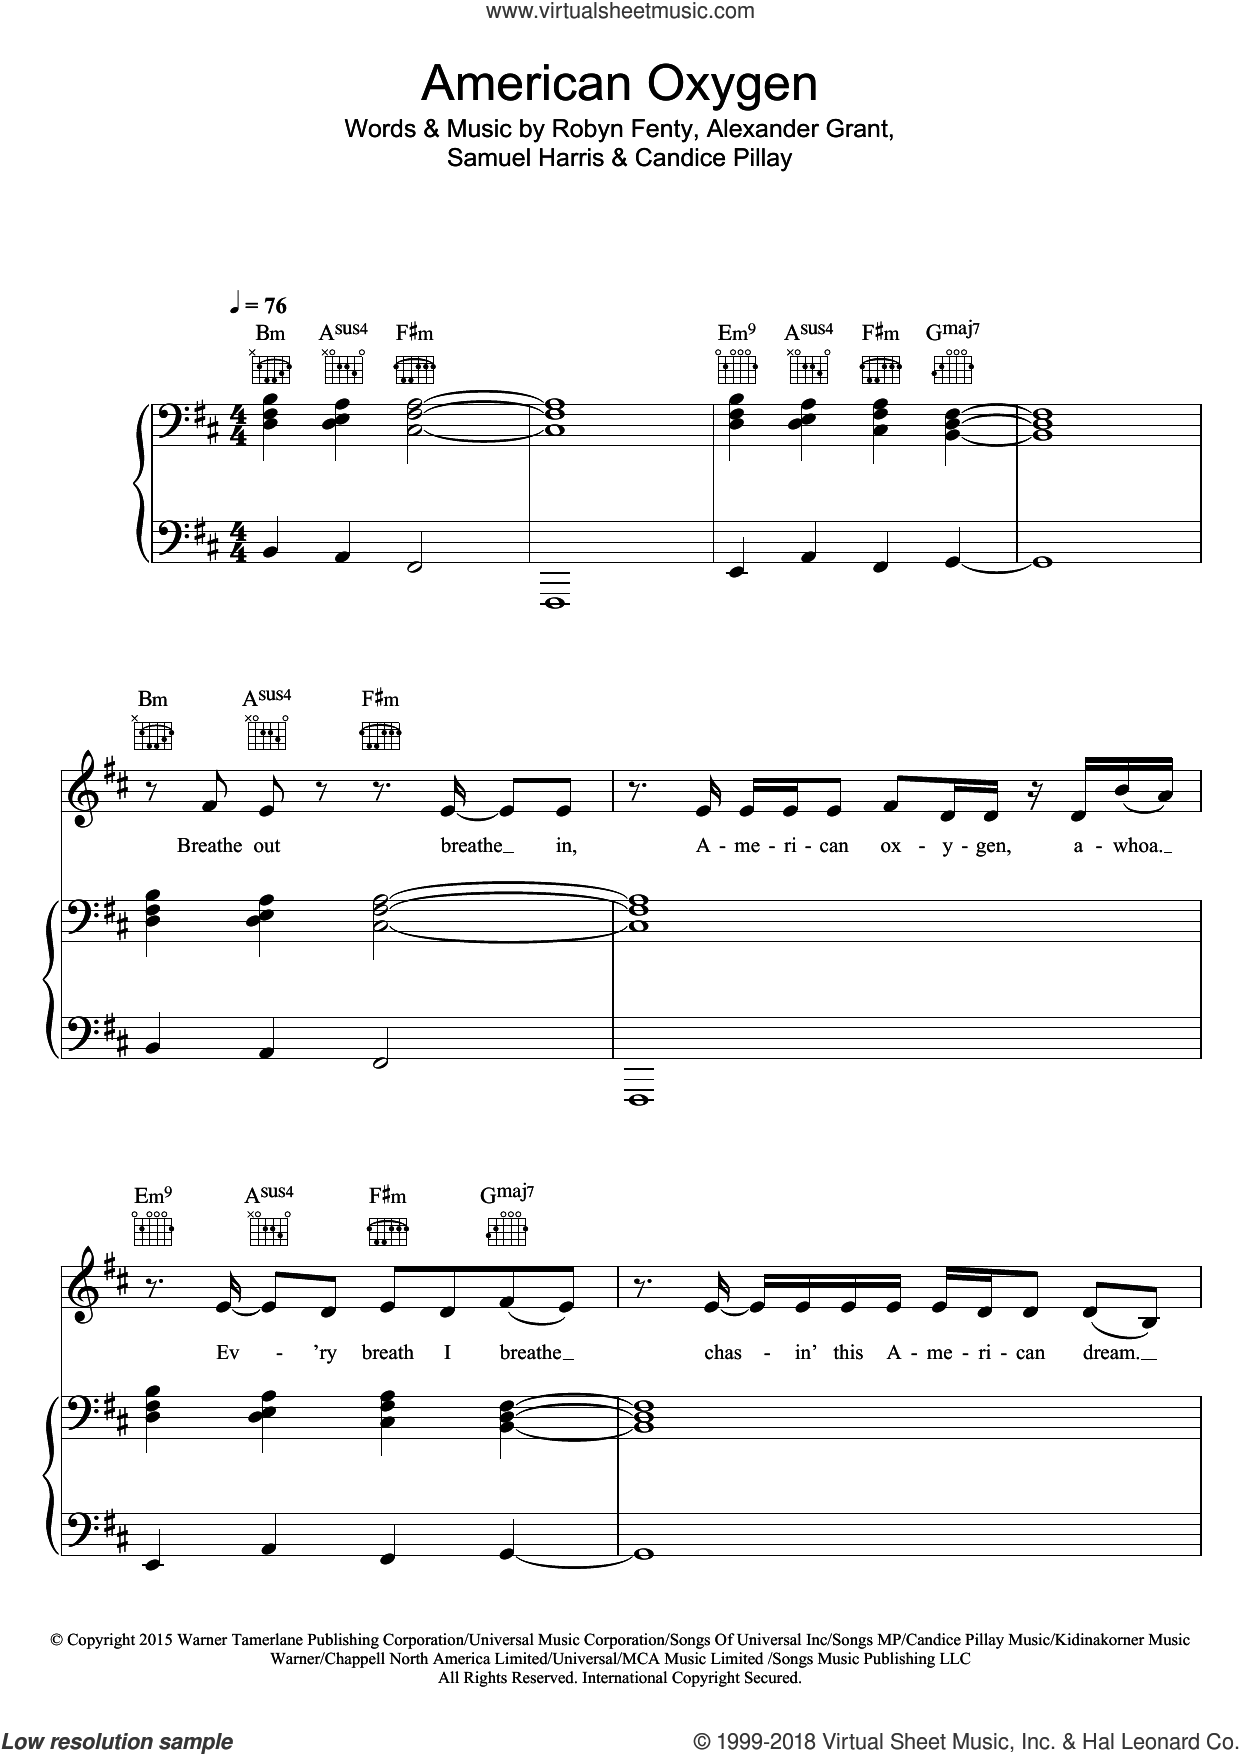 American Oxygen sheet music for voice, piano or guitar by Rihanna. Score Image Preview.